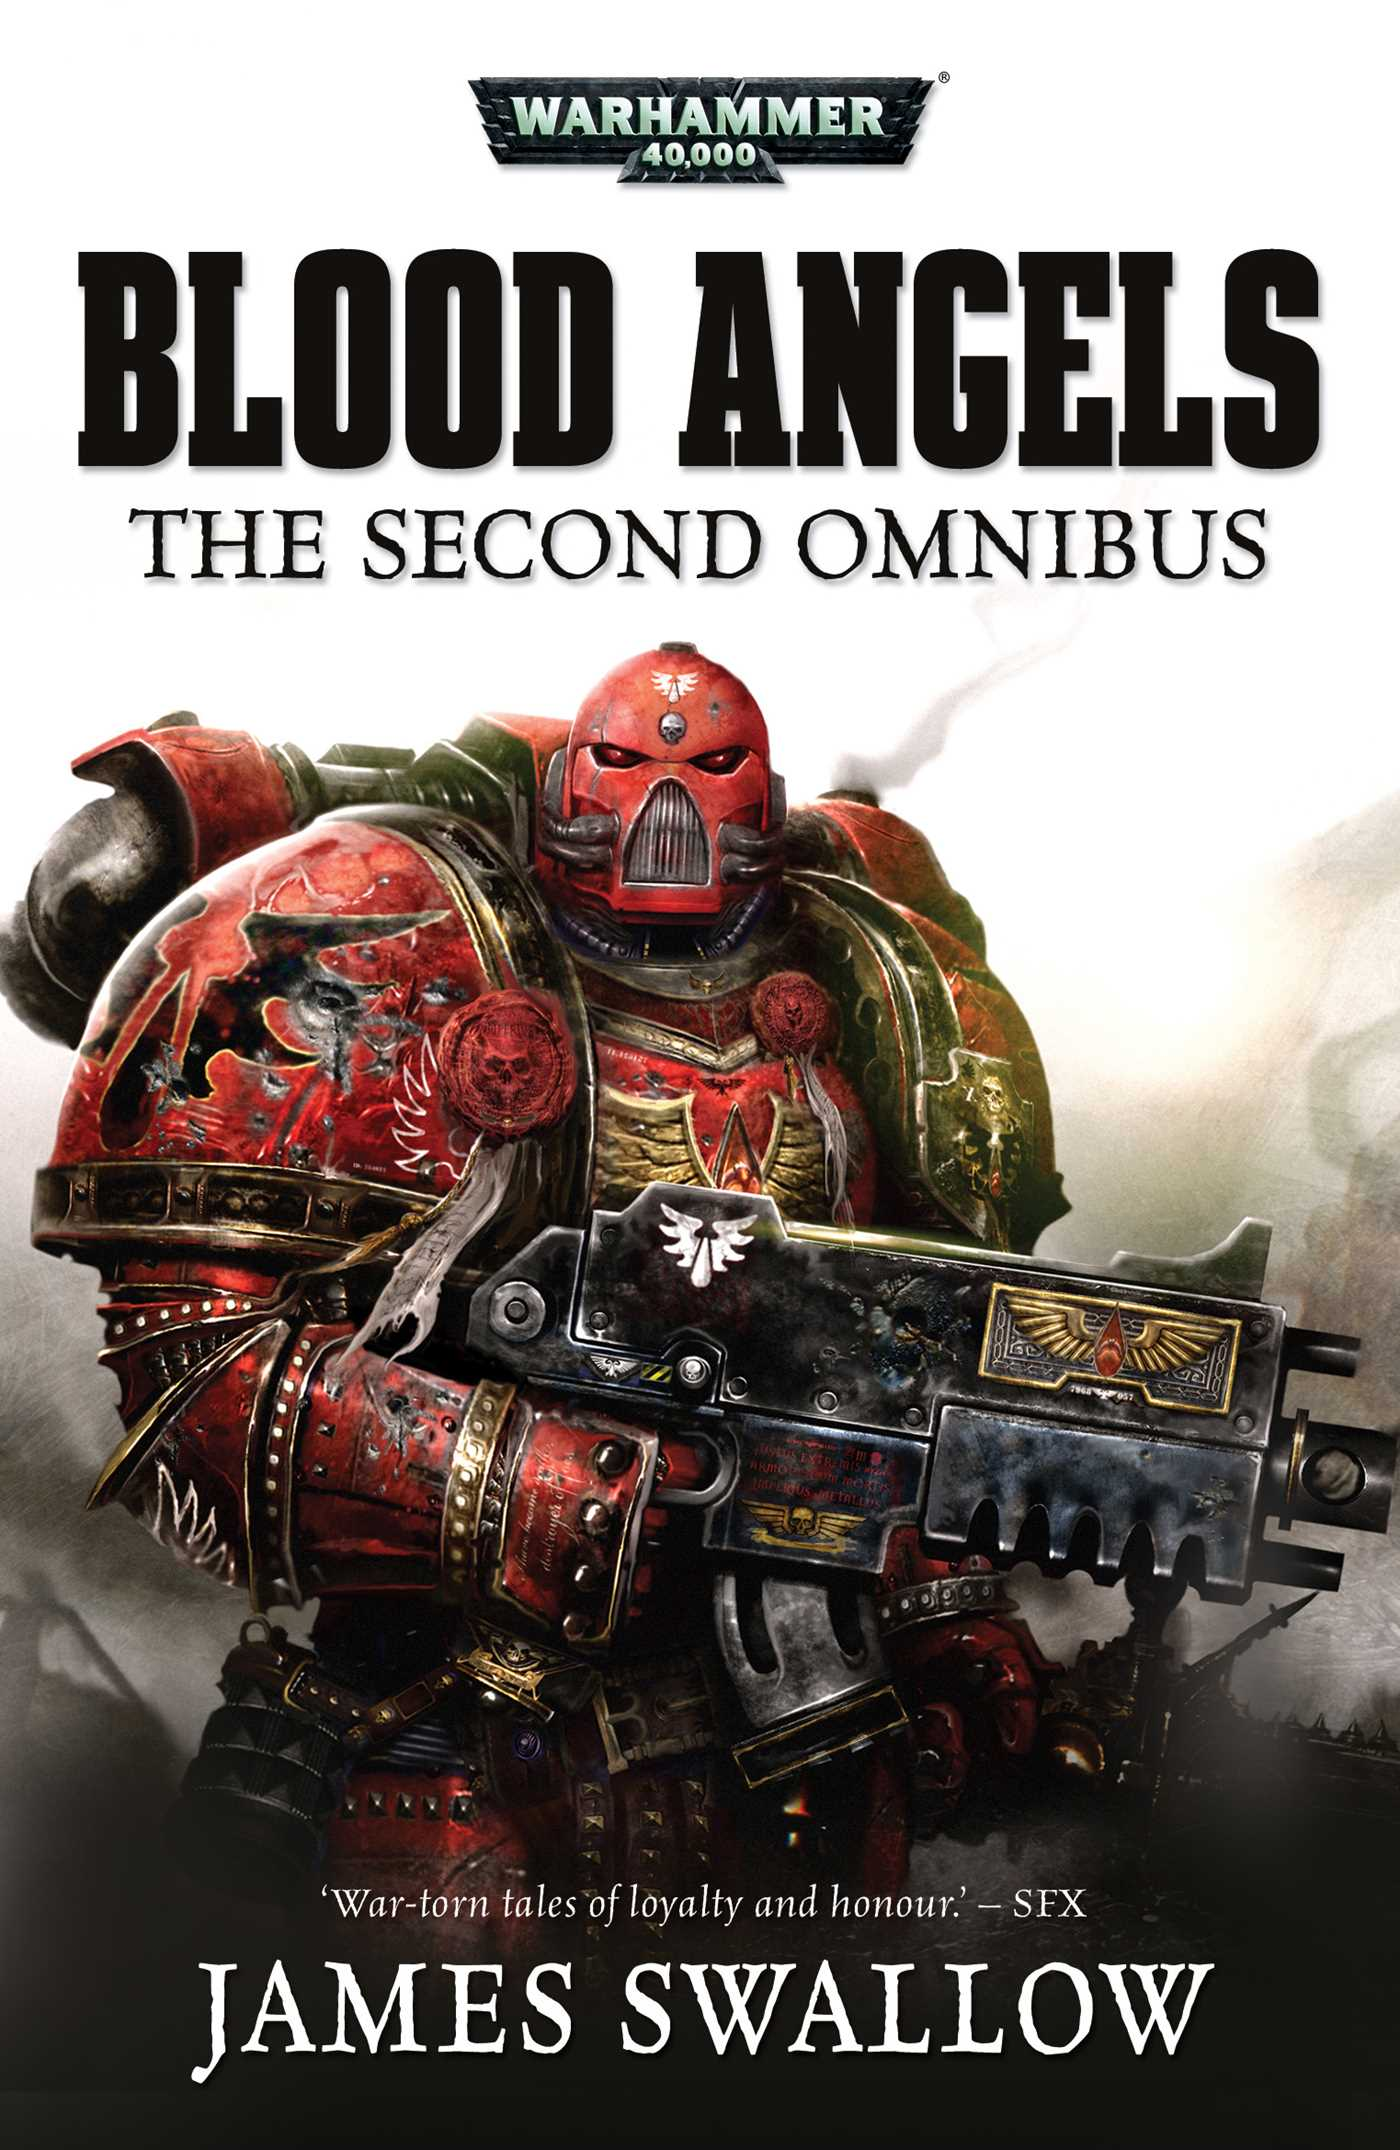 Blood angels the second omnibus 9781785721106 hr